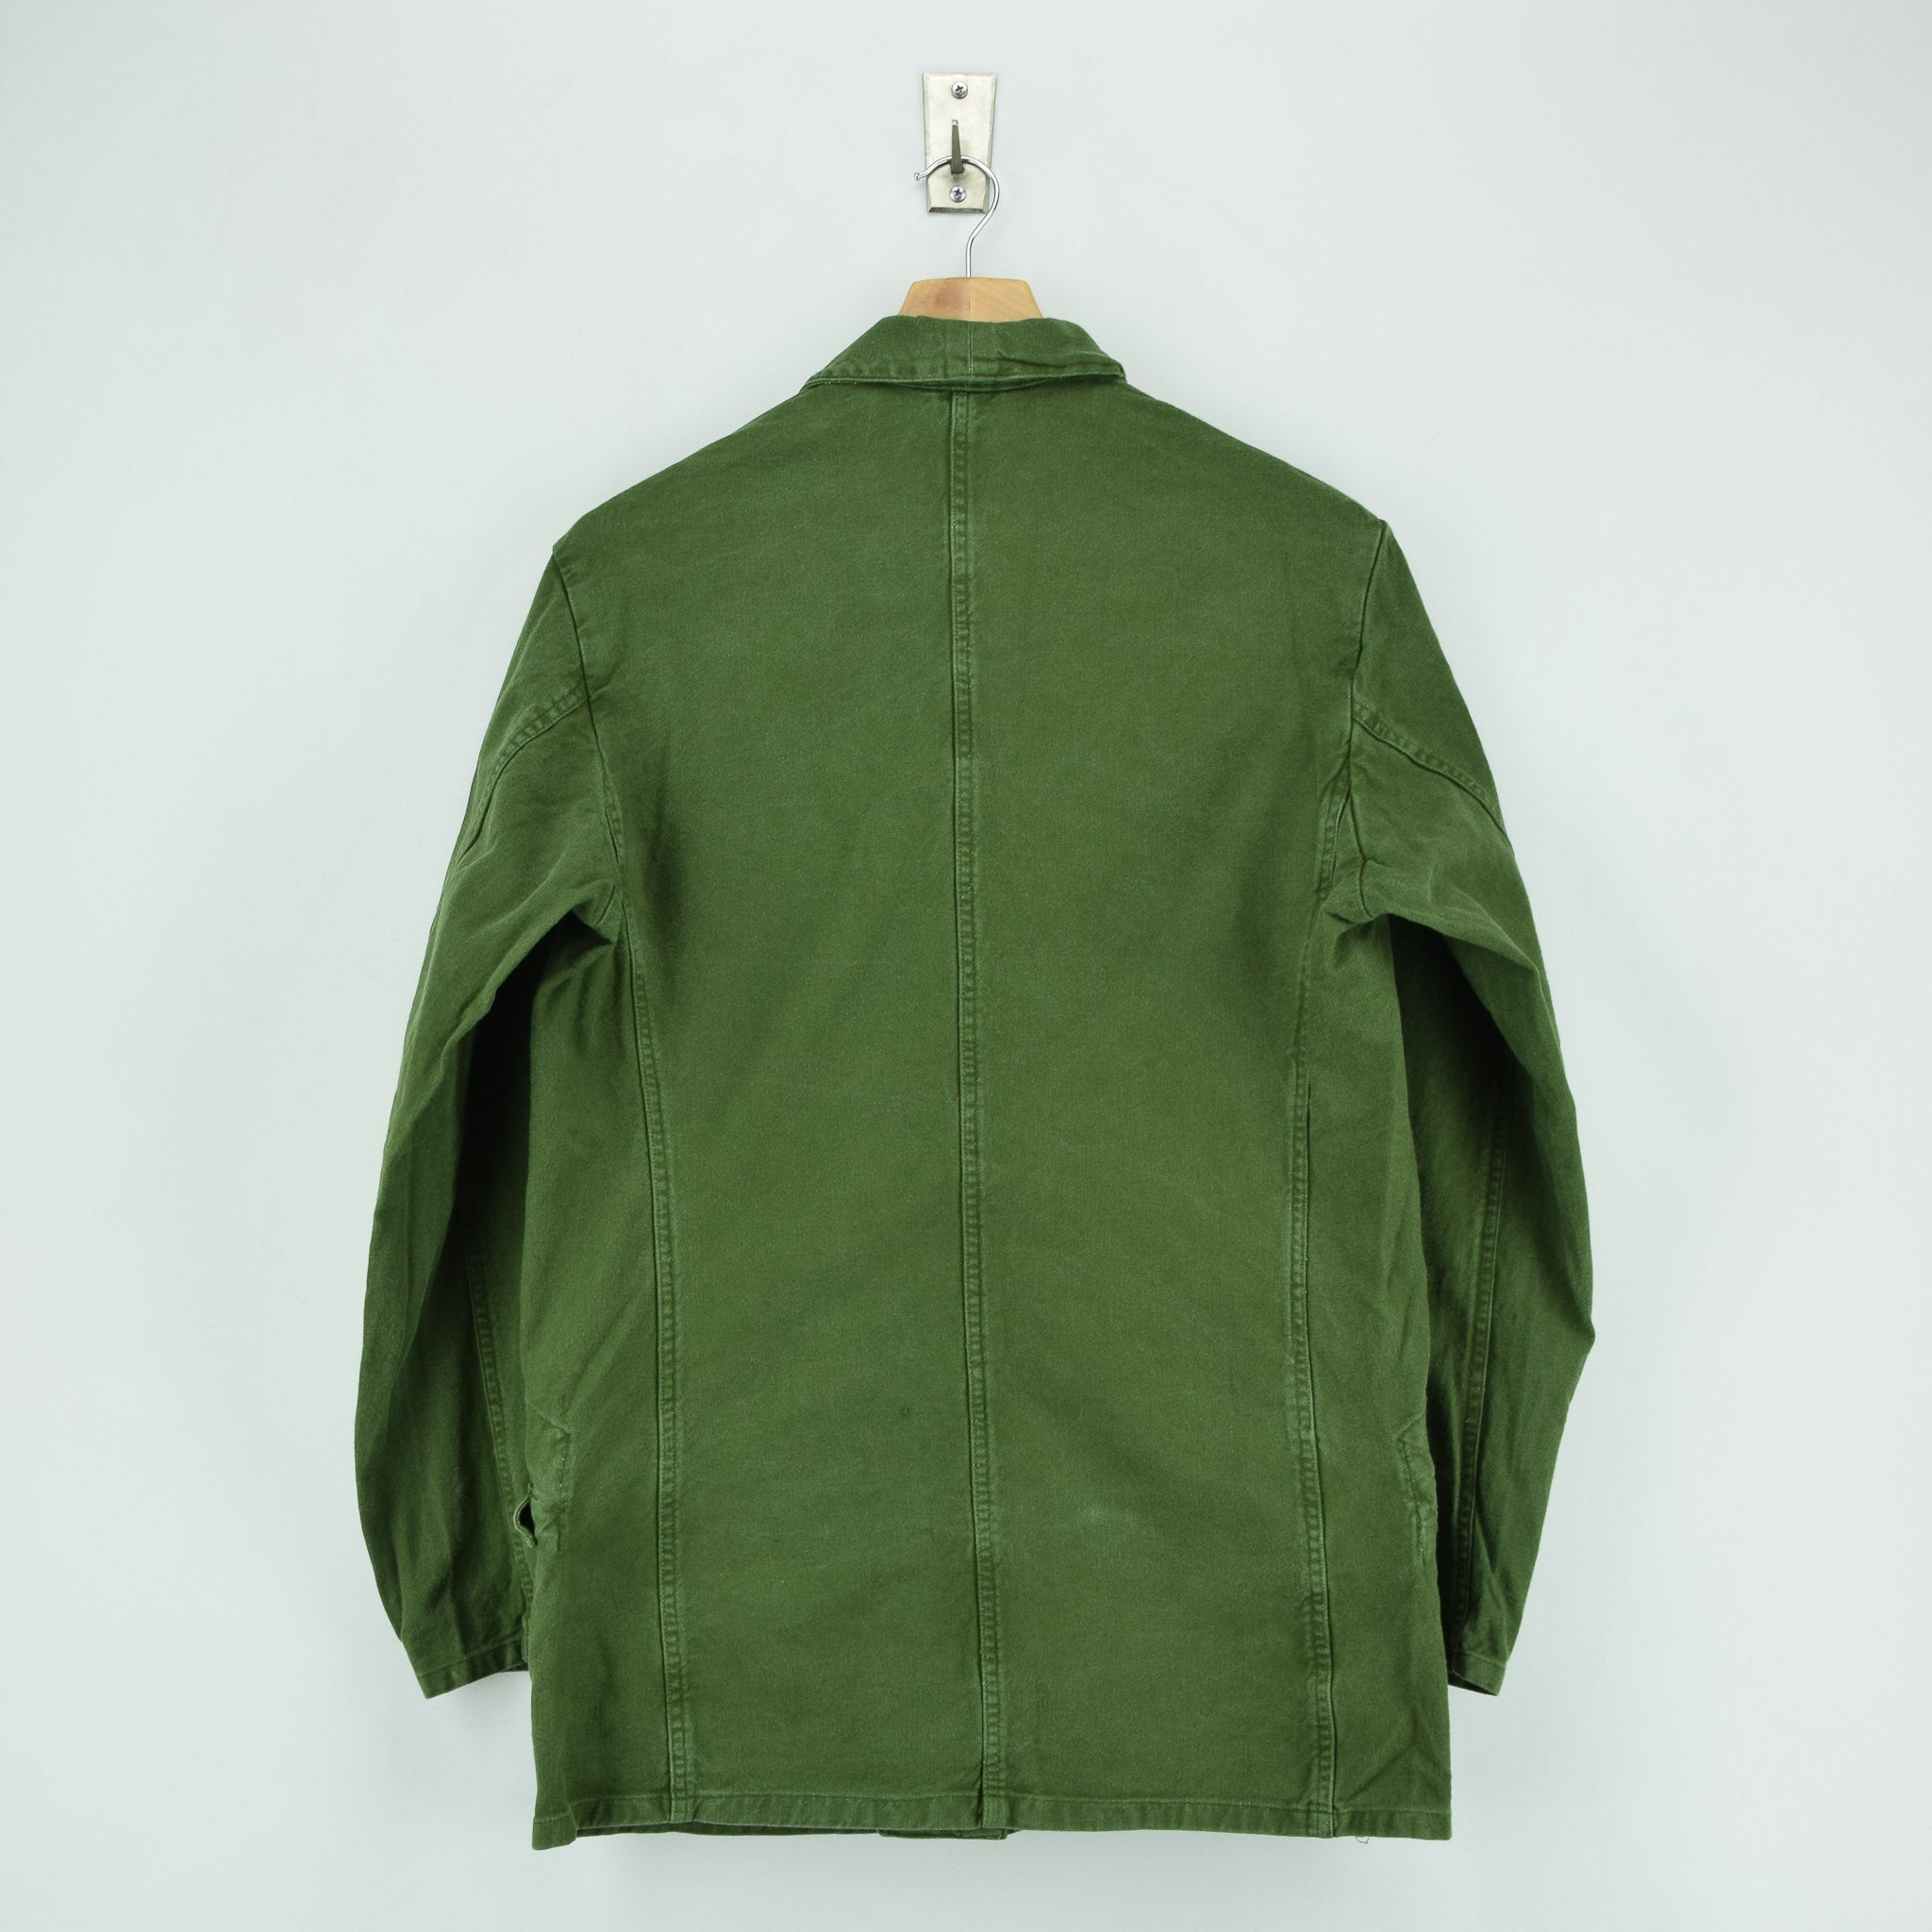 Vintage 60s Swedish Military Field Jacket Worker Style Distressed Green S / M back